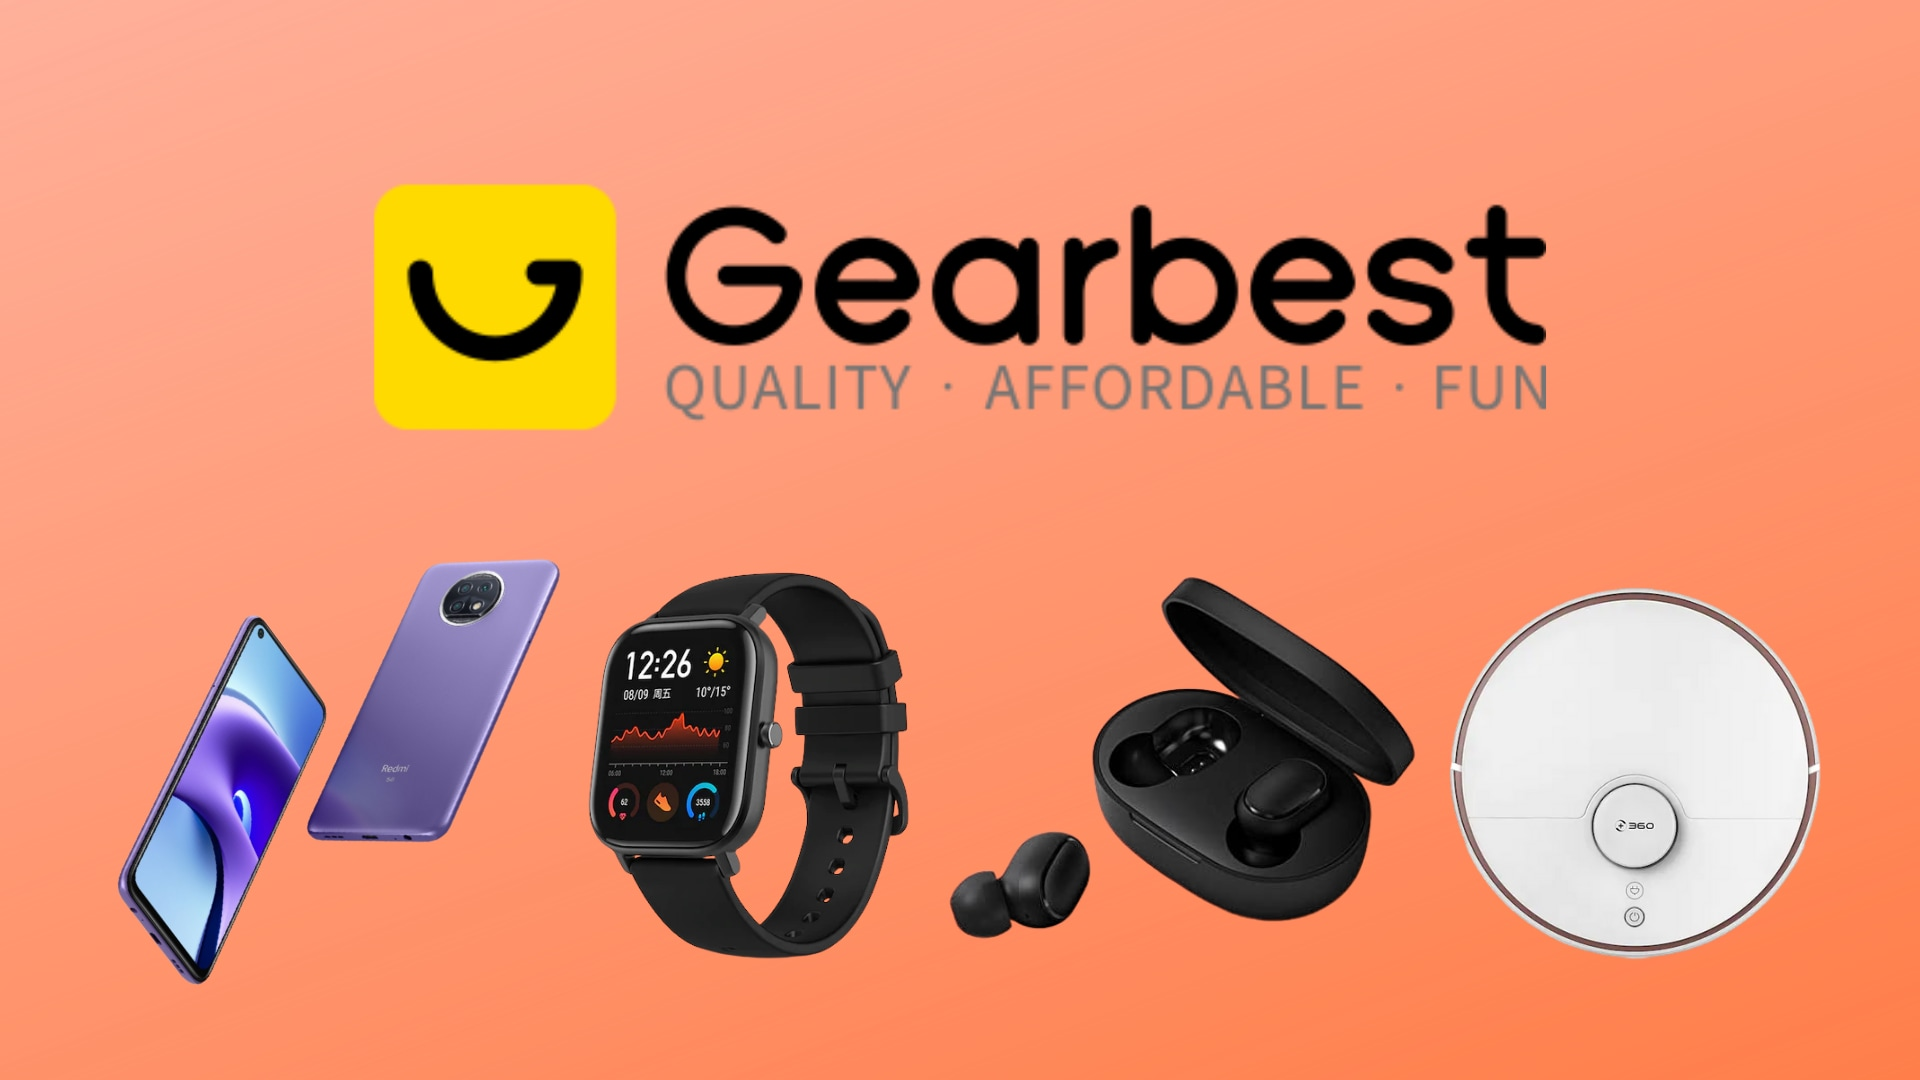 Gearbest ha speaker colorati e auricolar …